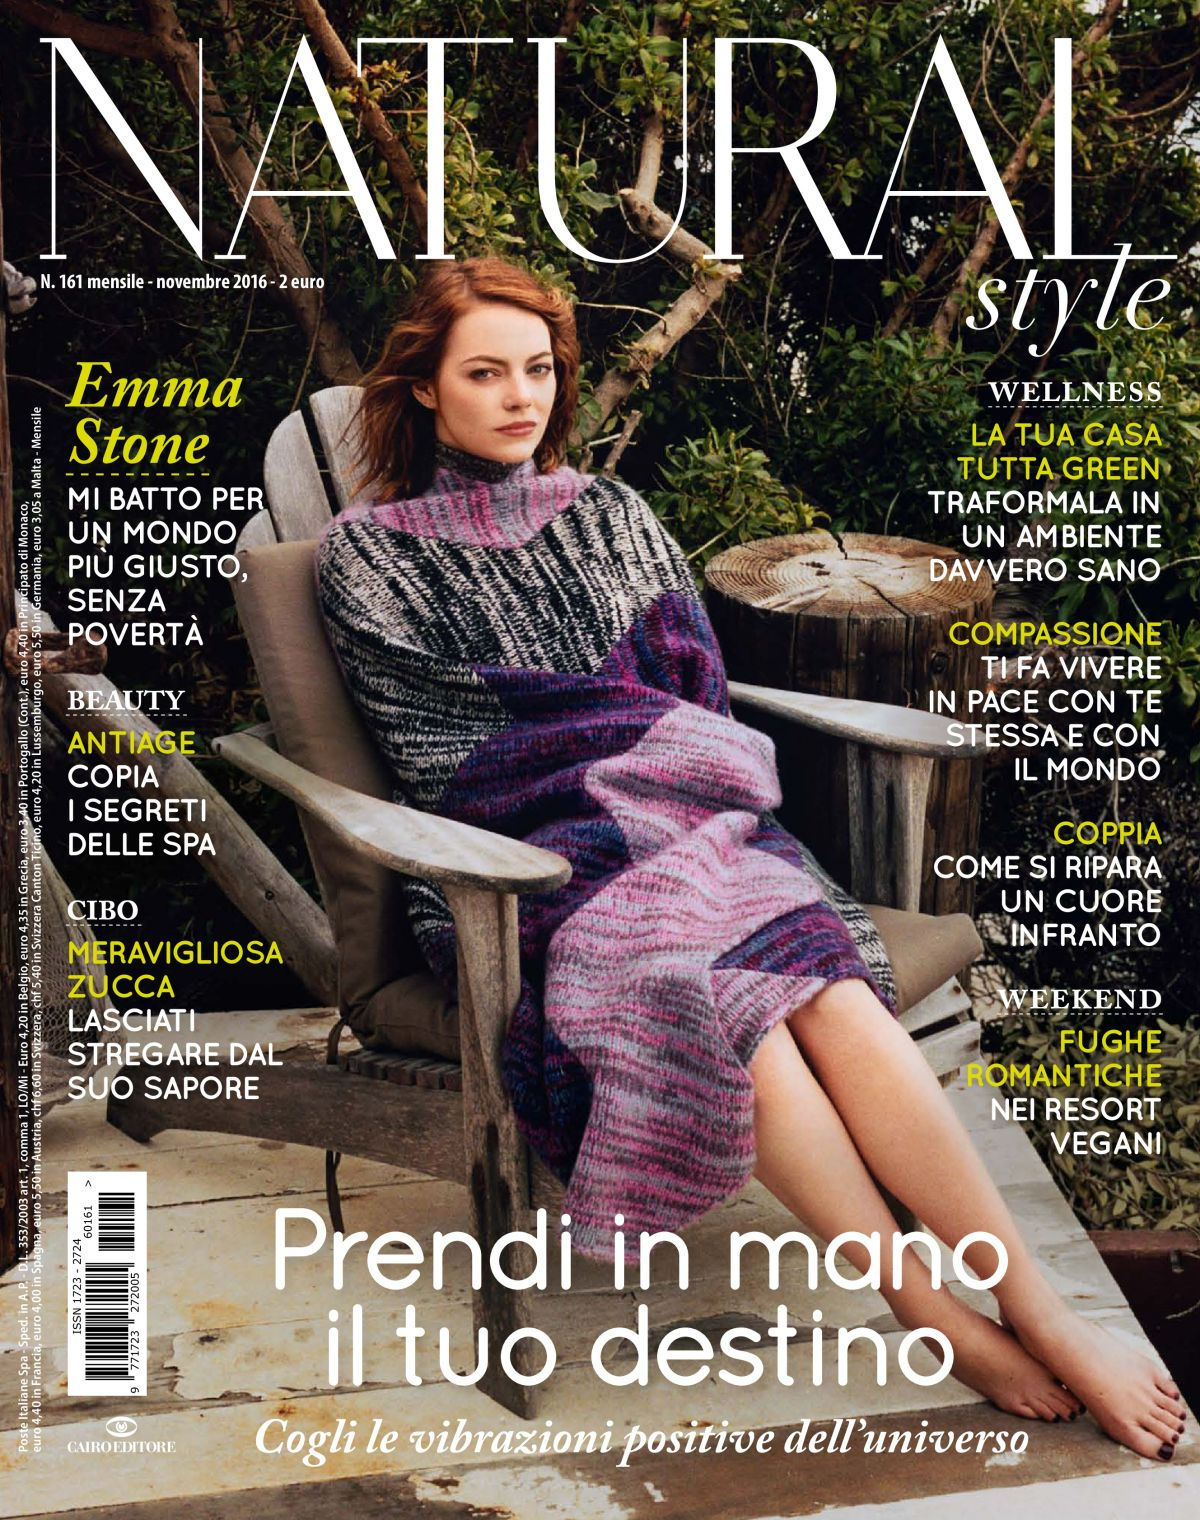 EMMA STONE in Natural Style Magazine, Iitaly November 2016